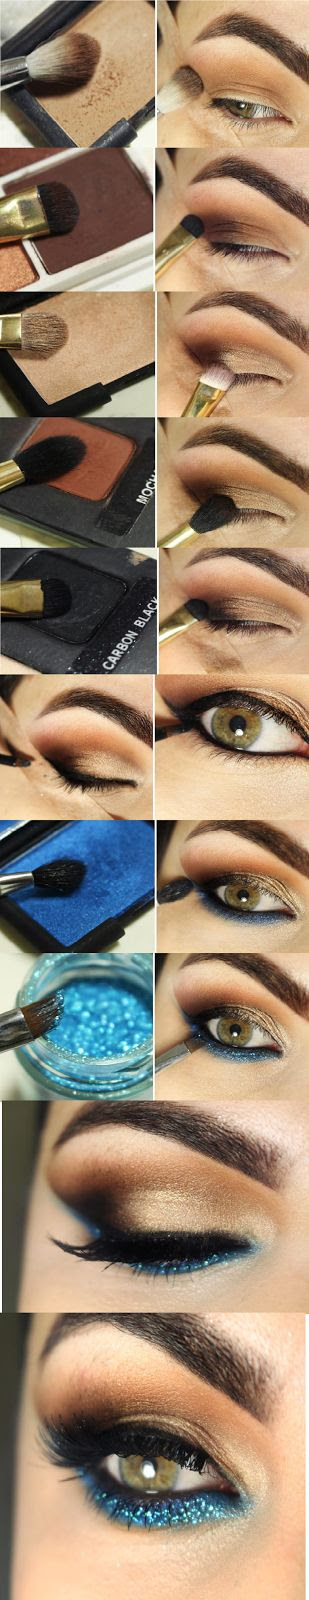 Pearl and Turquoise Eye Makeup Tutorials